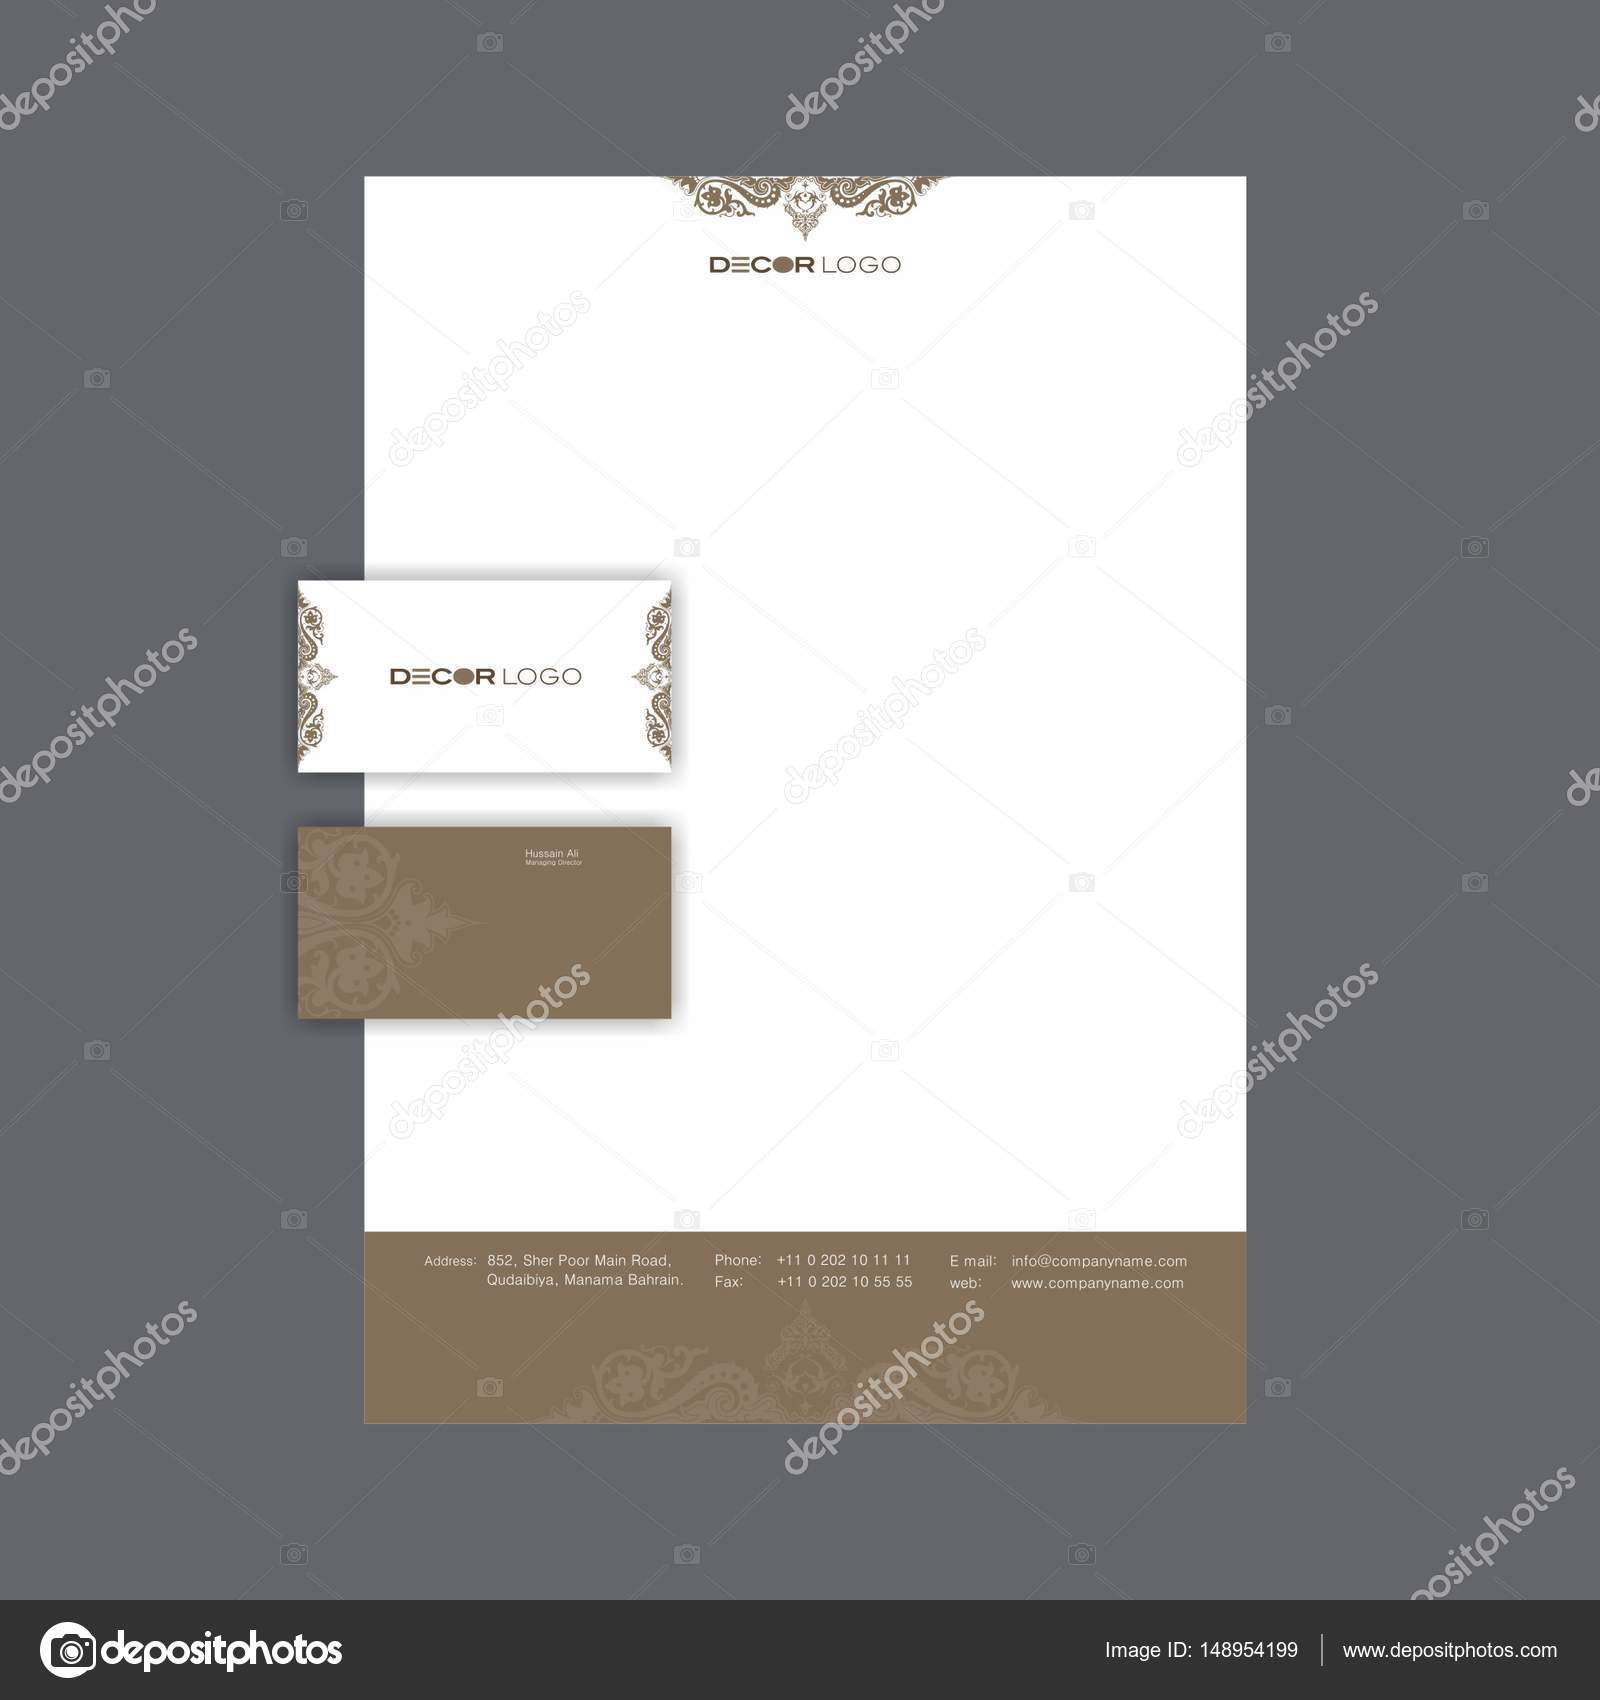 Beautiful business card and letterhead design with ornament beautiful business card and letterhead design with ornament background stock vector reheart Images